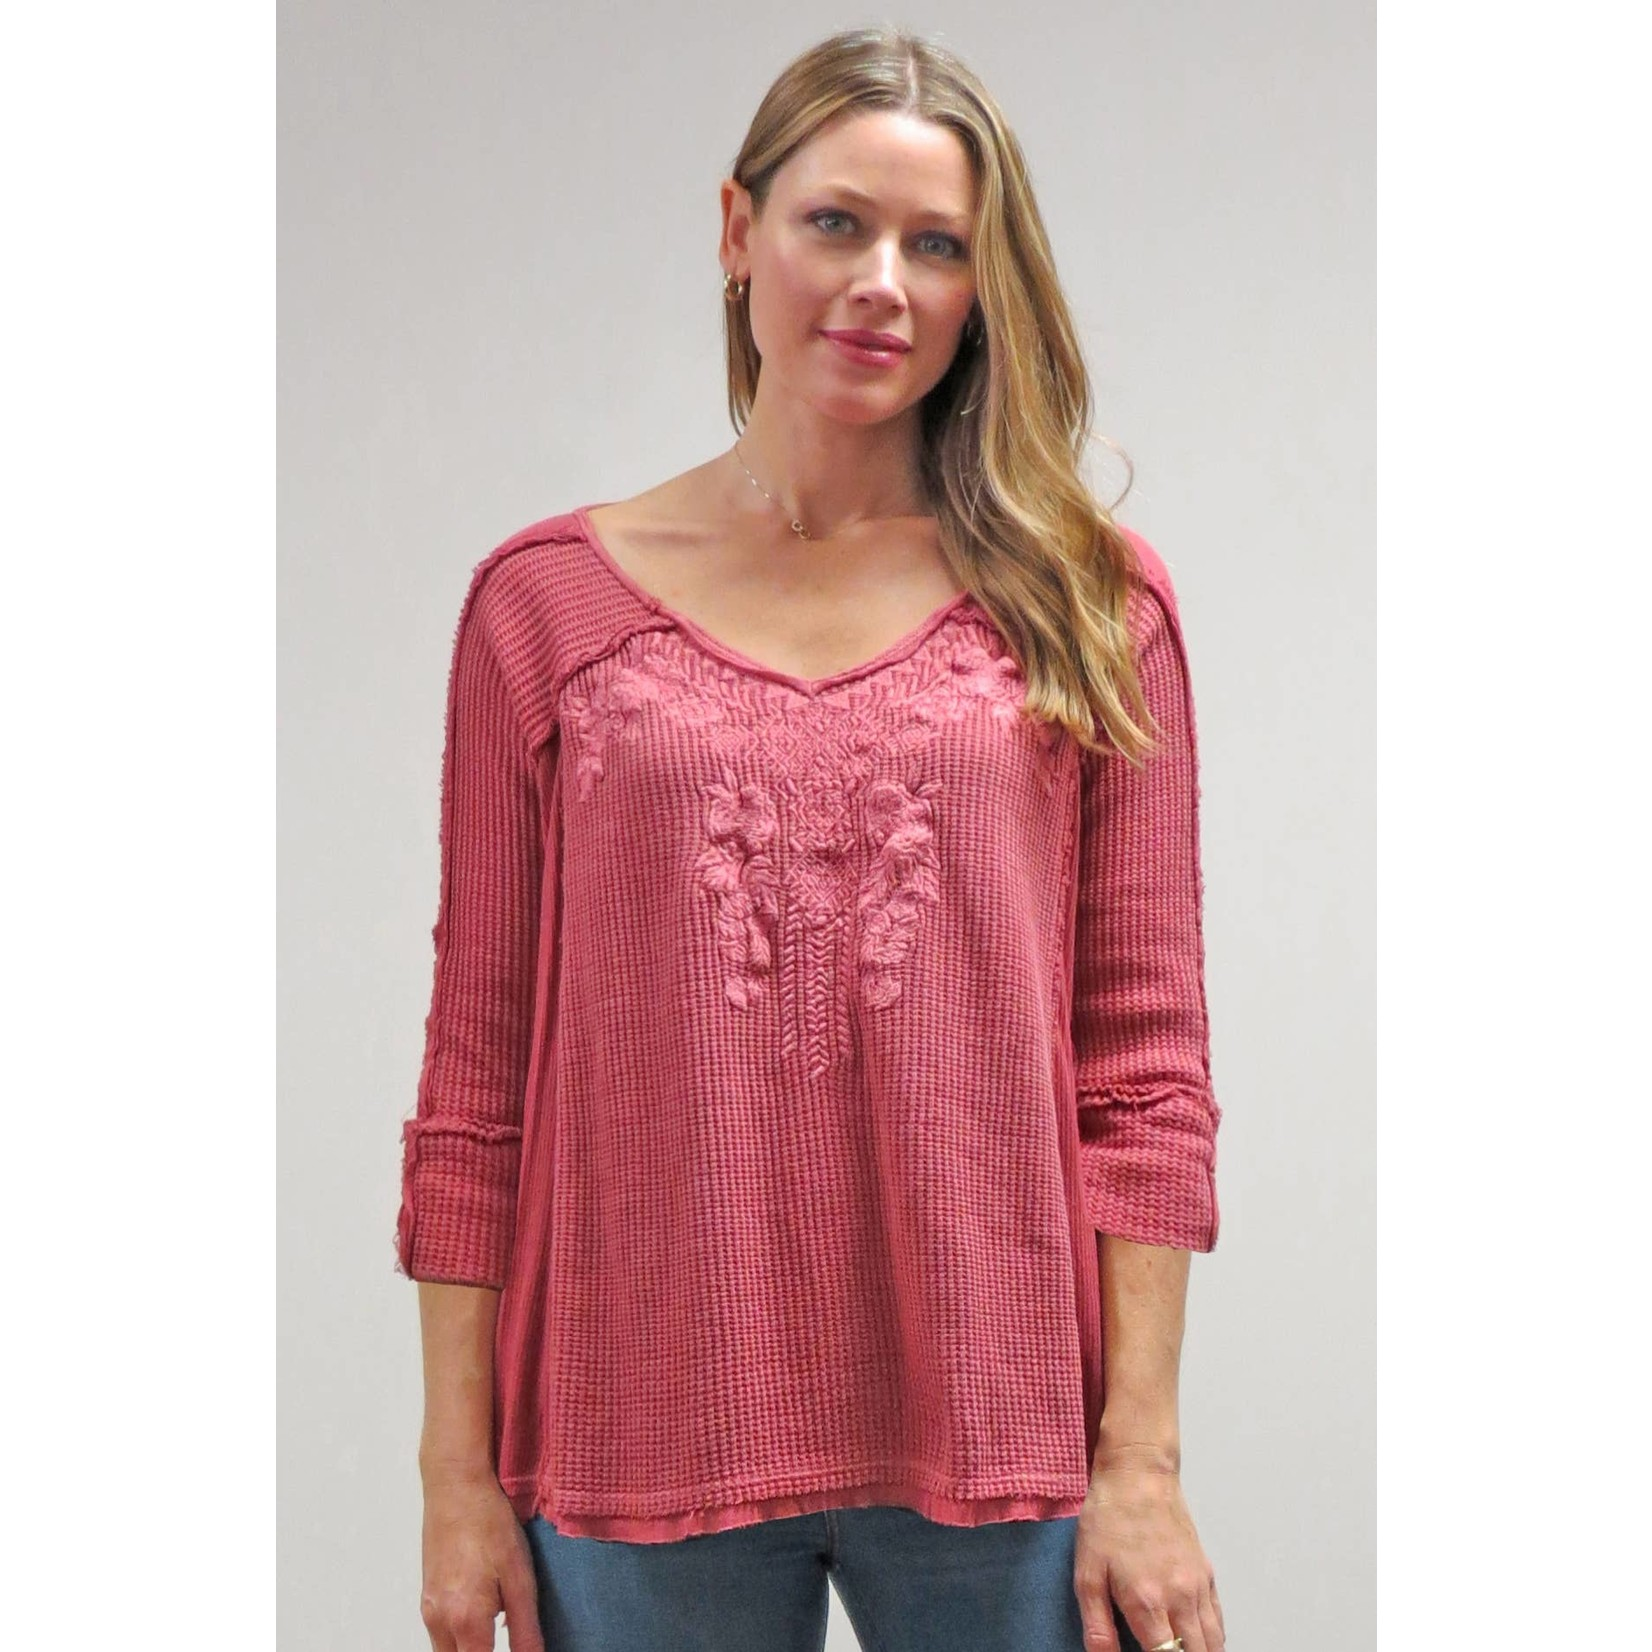 Caite Arden Embr Waffle 3/4 Slv Top in Faded Rose